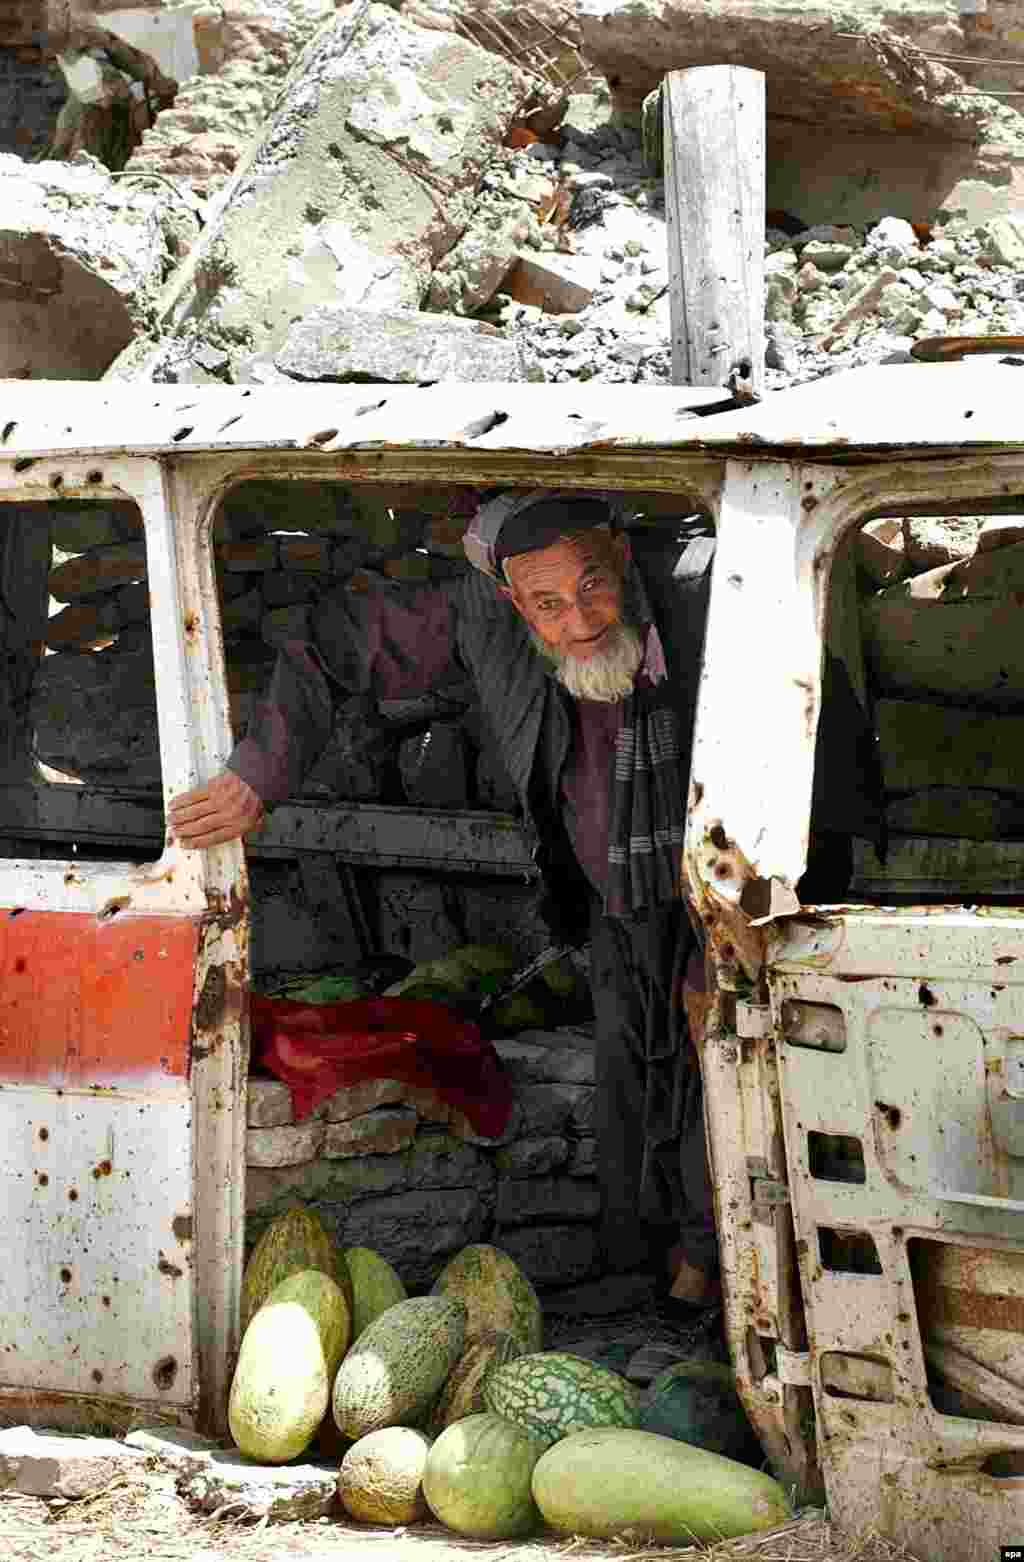 An elderly fruit vendor sets up shop inside a bullet-riddled car in Kabul (epa) - The government raises pitifully little in taxes. Yet it faces a reconstruction effort of huge proportions. Inevitably, Afghanistan is critically dependent on foreign aid to develop, and roughly one in 10 Afghans still requires food aid to subsist.